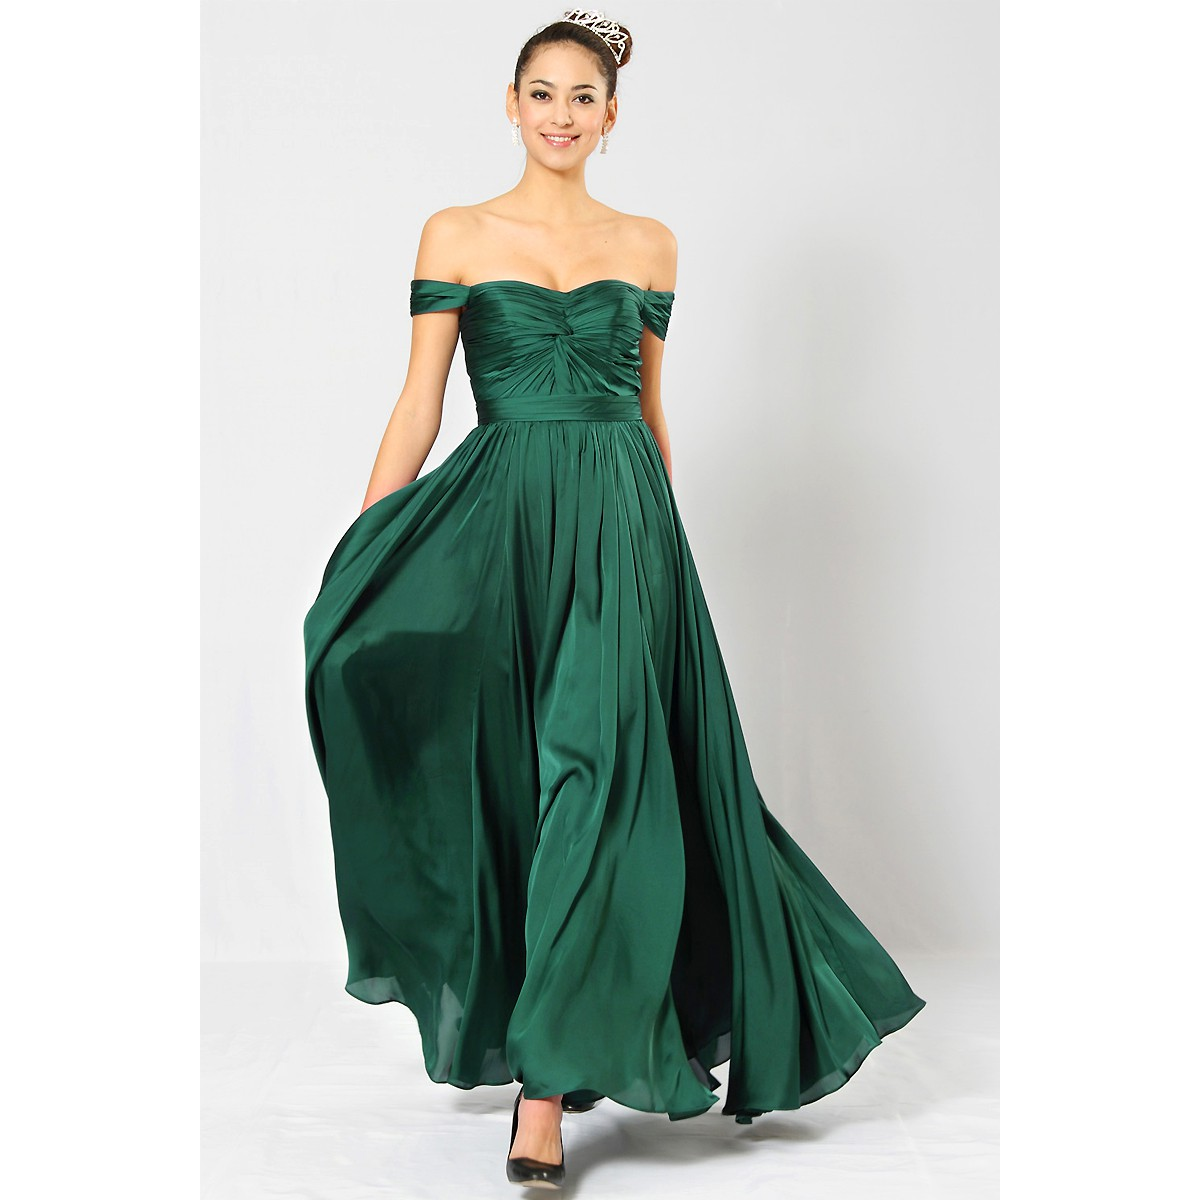 prom dresses,beformal.com.au,long formal dresses,backless dresses,indian fashion blogger,online shopping,how to shop a prom dress,online store,be formal review,wedding gown,chamber of beauty